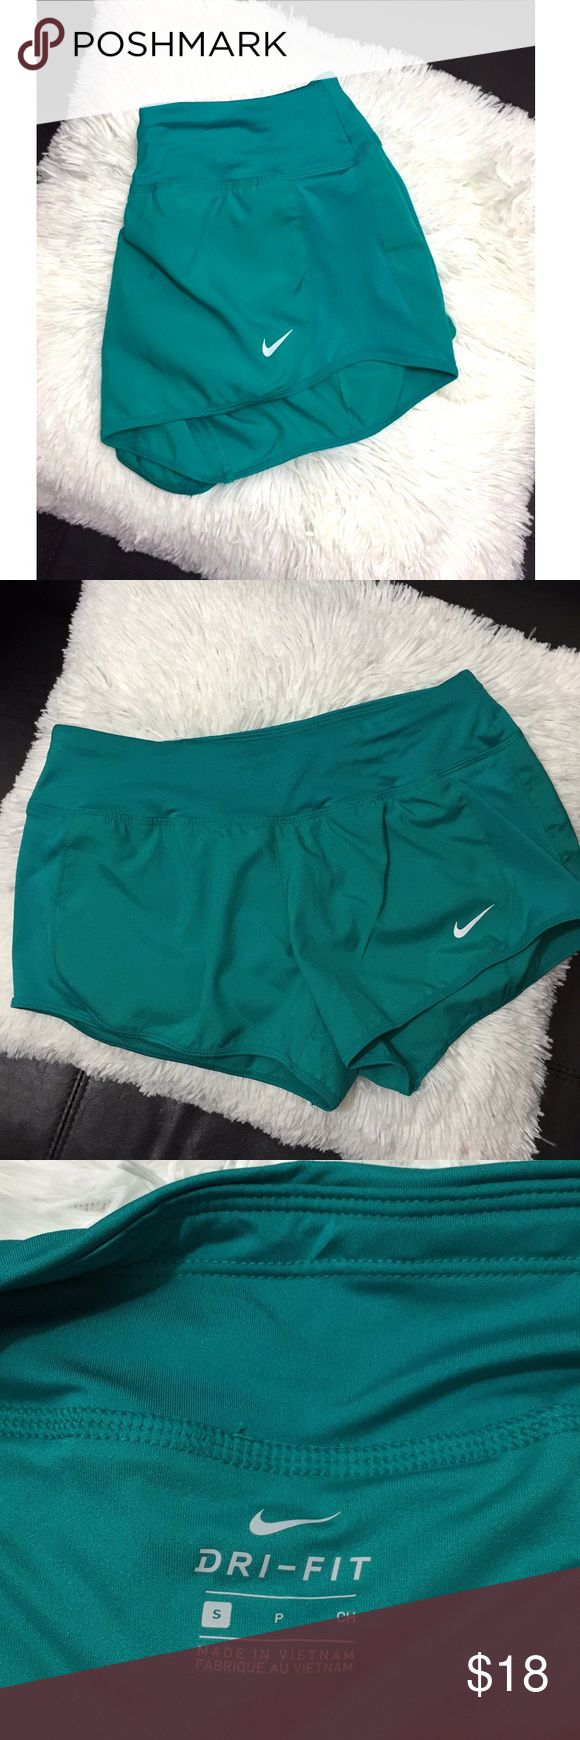 Teal Nike Running Shorts Teal Nike running shorts, women's size small. Like new condition. Has drawstrings and liner on inside!  Nike Shorts